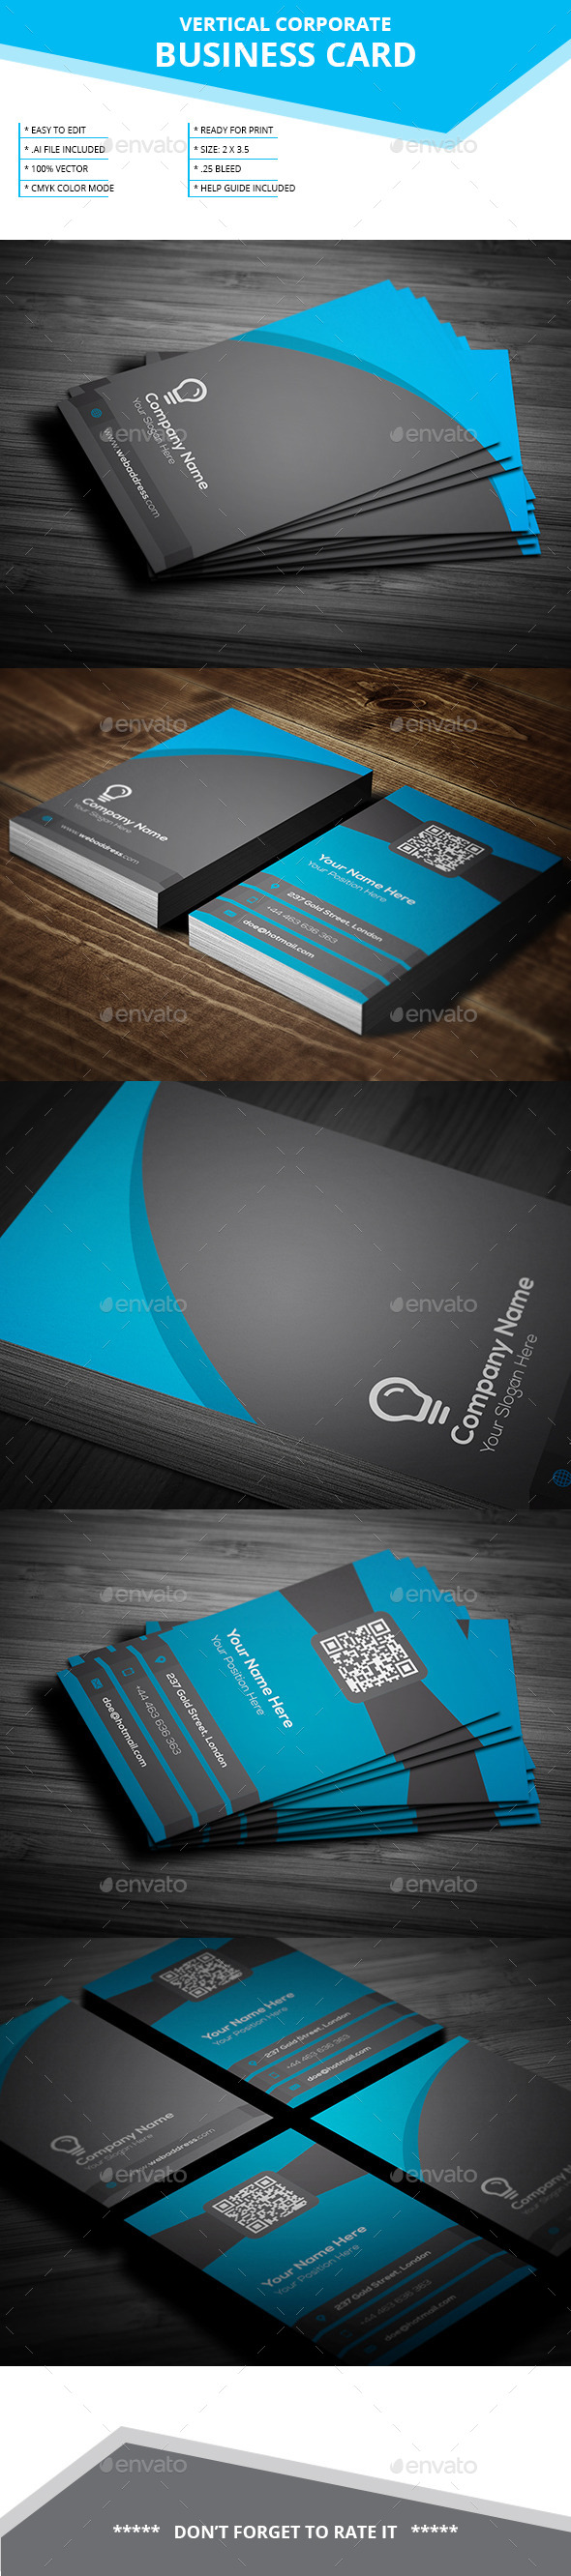 Vertical Business Card _ Vol-01 - Business Cards Print Templates